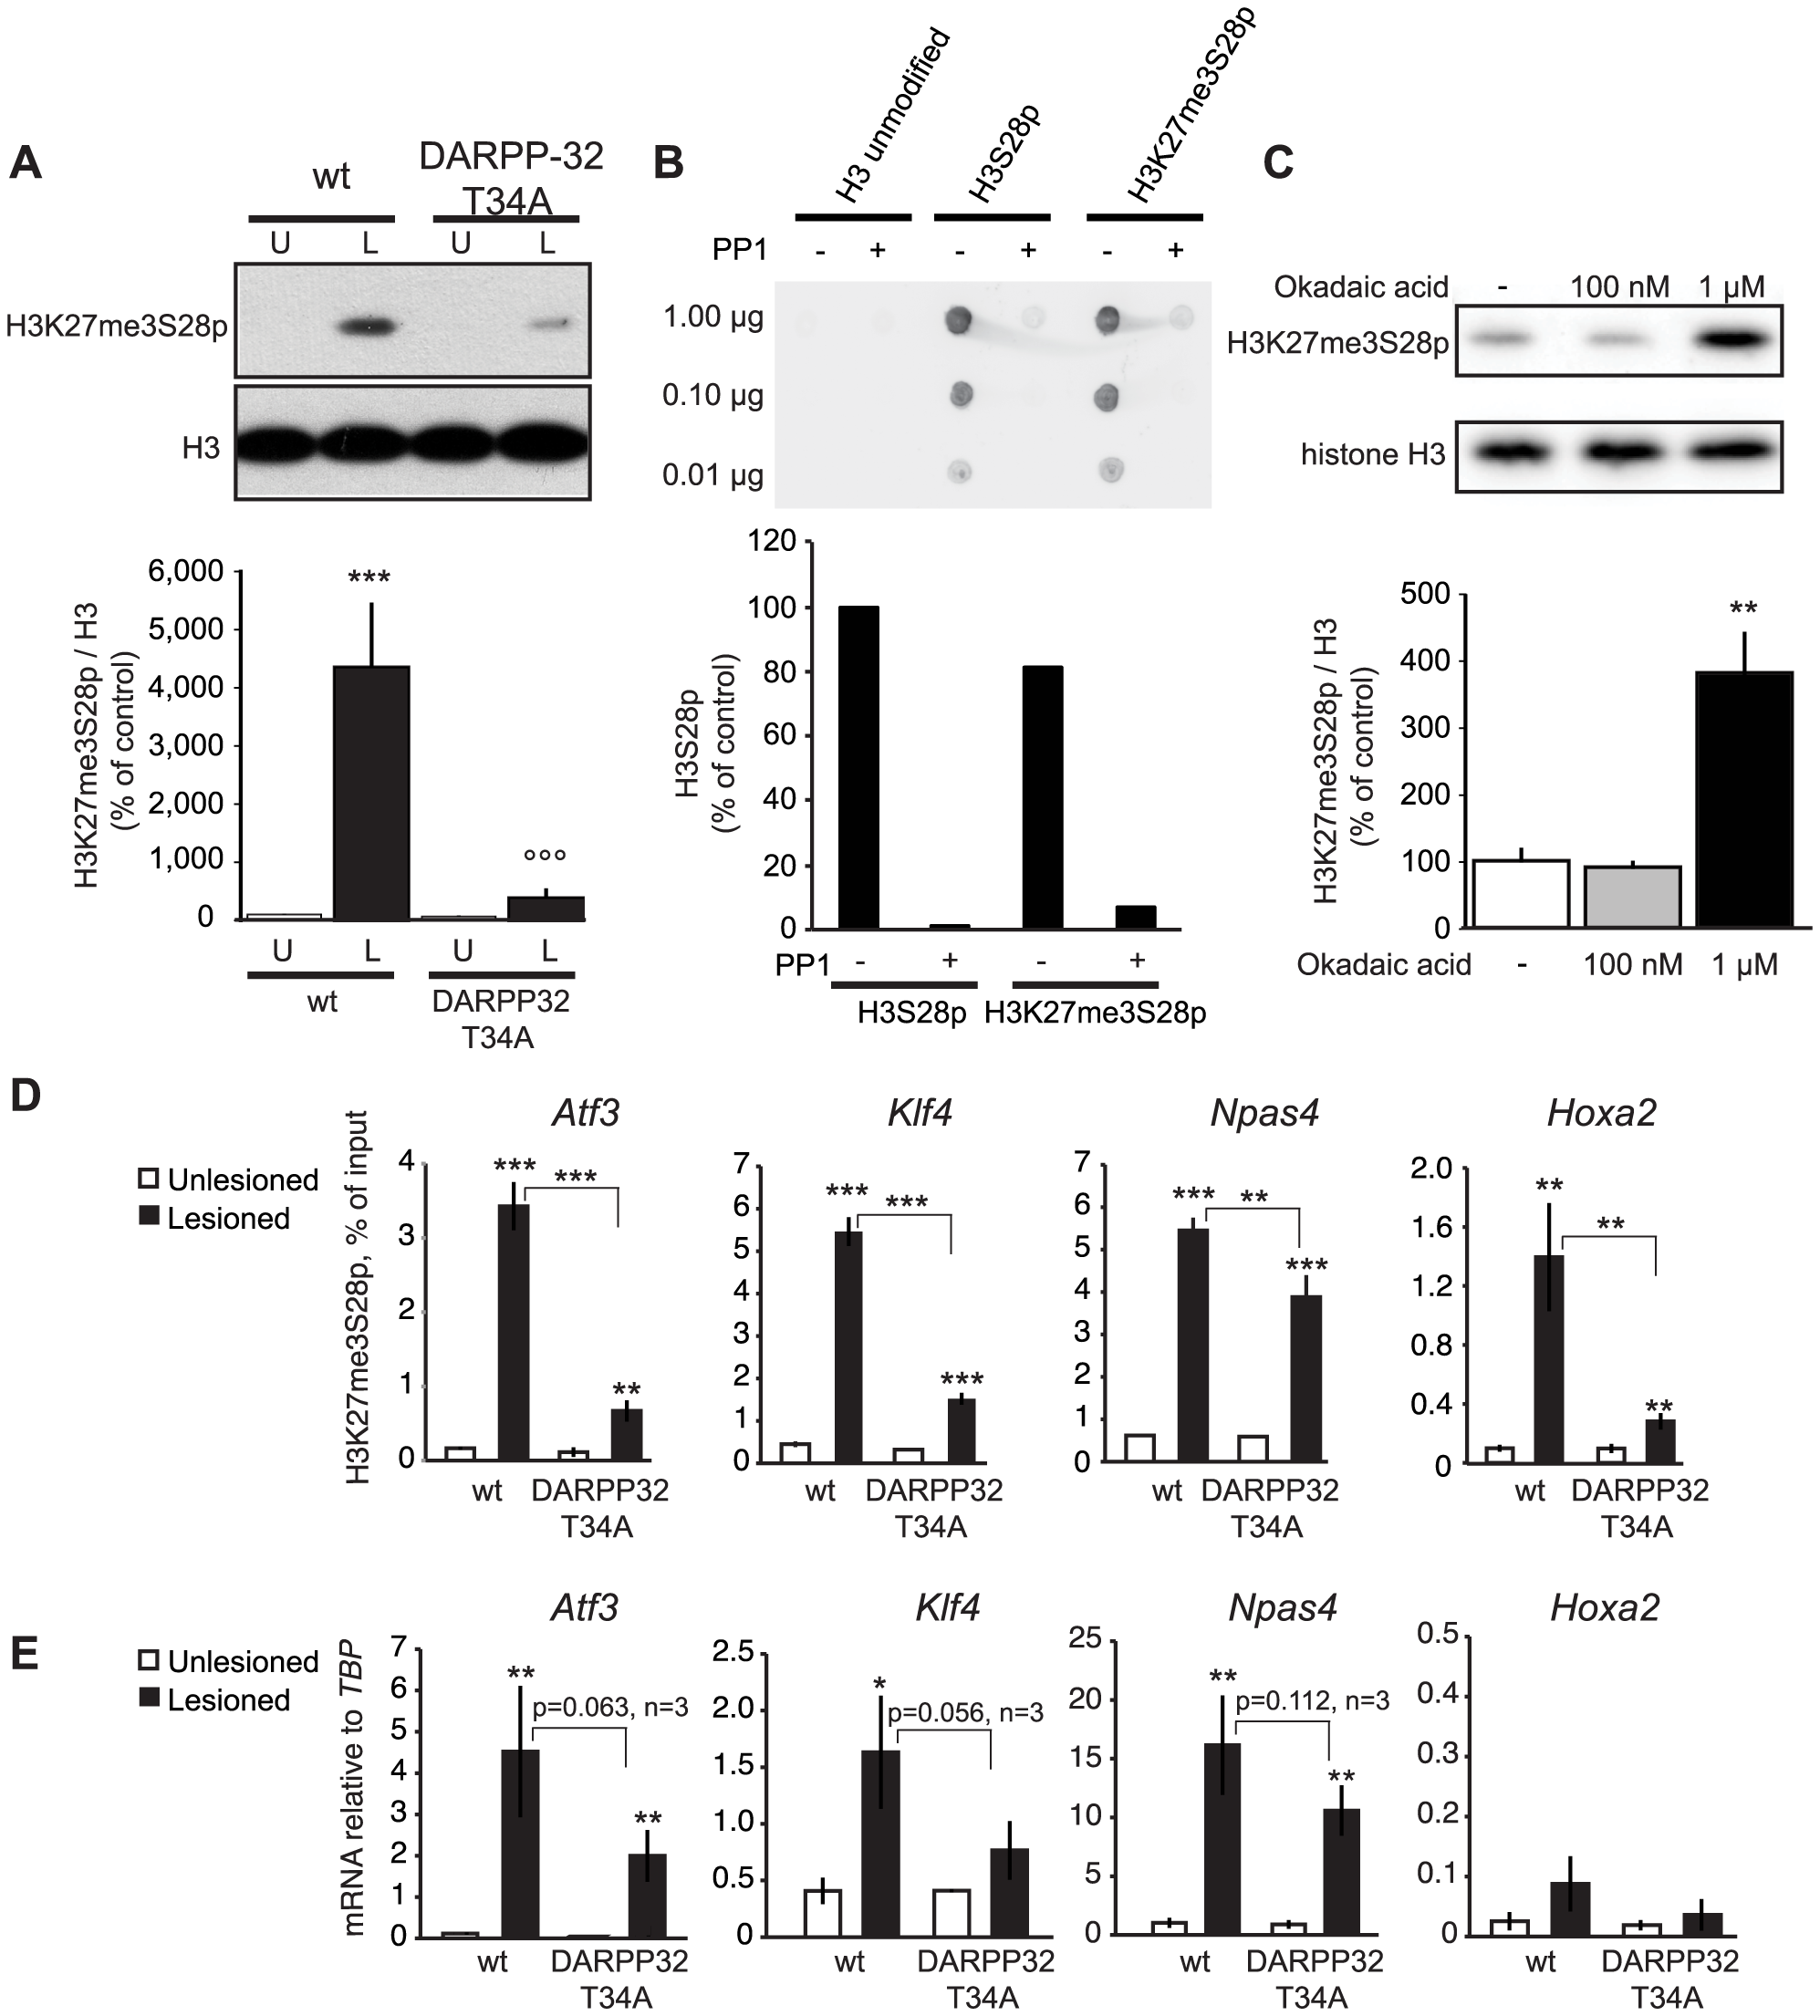 L-DOPA induced H3K27me3S28 phosphorylation and gene activation are dependent on a functional PP1 interaction site on DARPP-32.